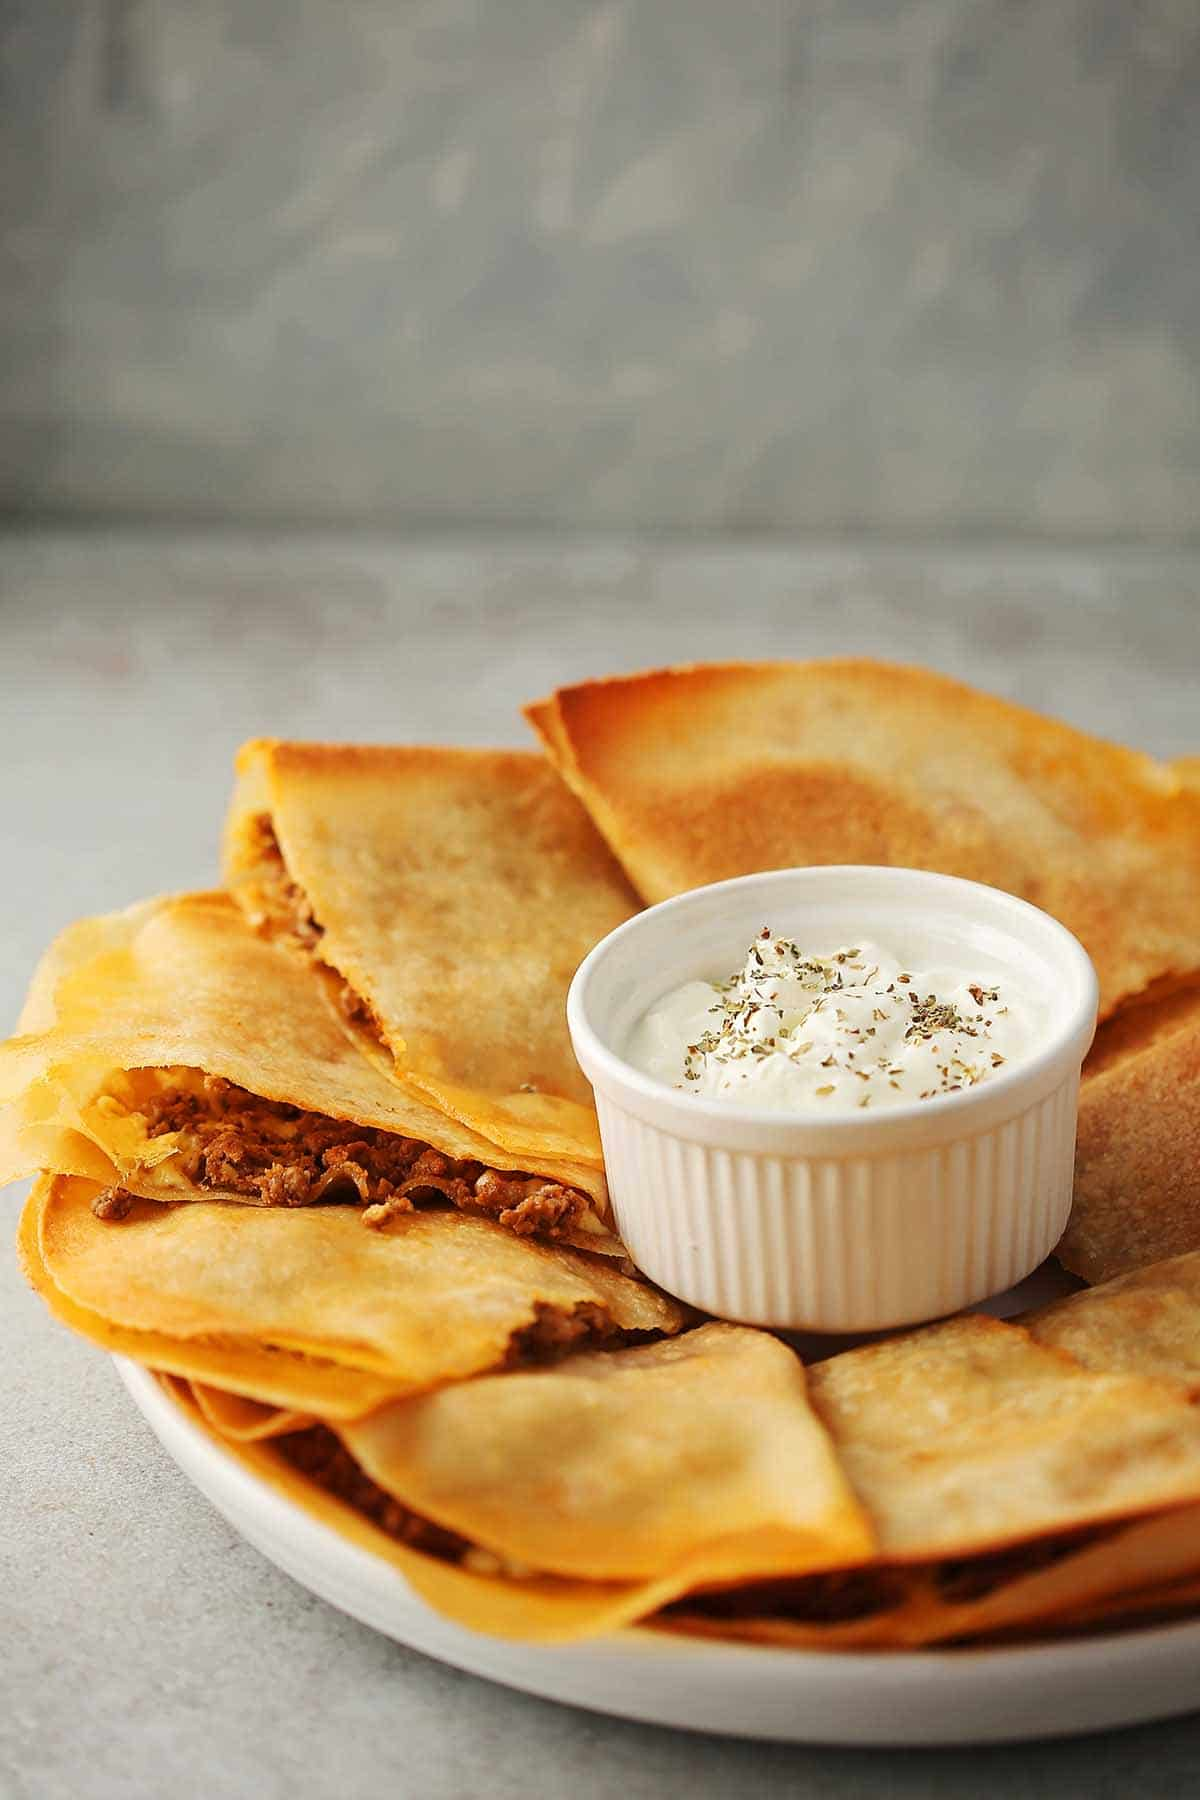 large white plate with sliced quesadillas and small dish filled with dressing